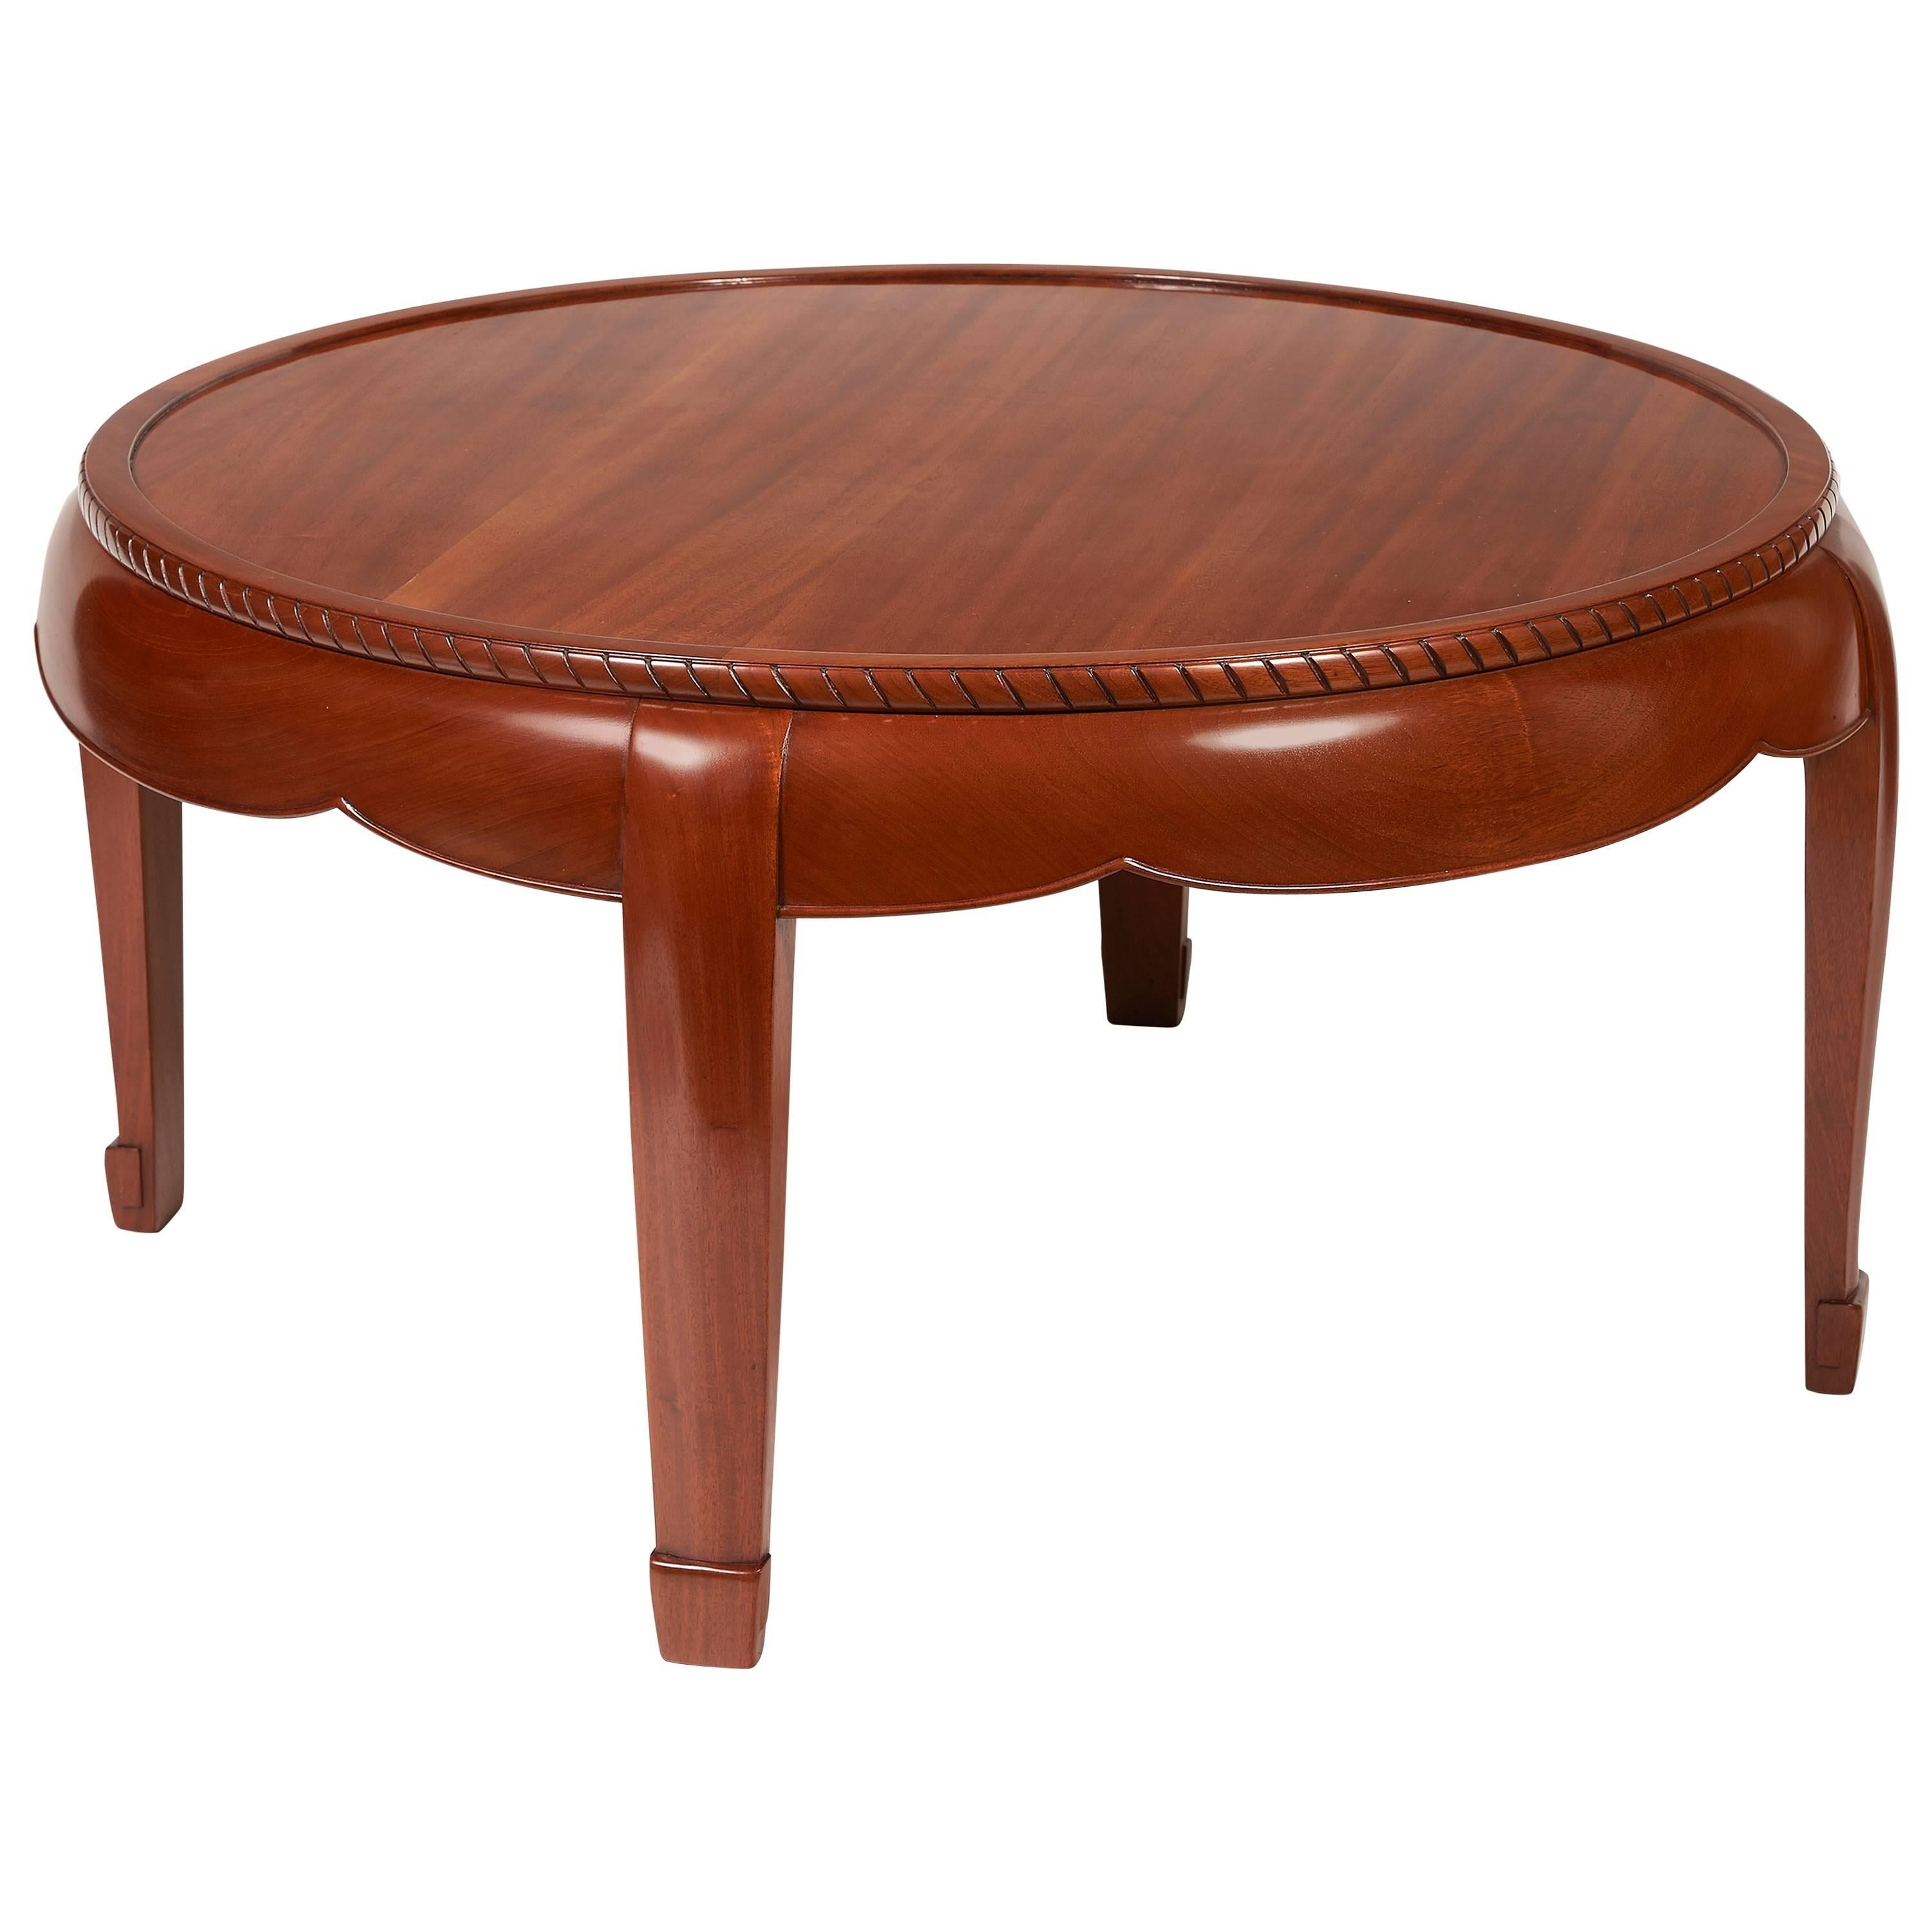 Coffee Table by Süe & Mare, circa 1922-1923